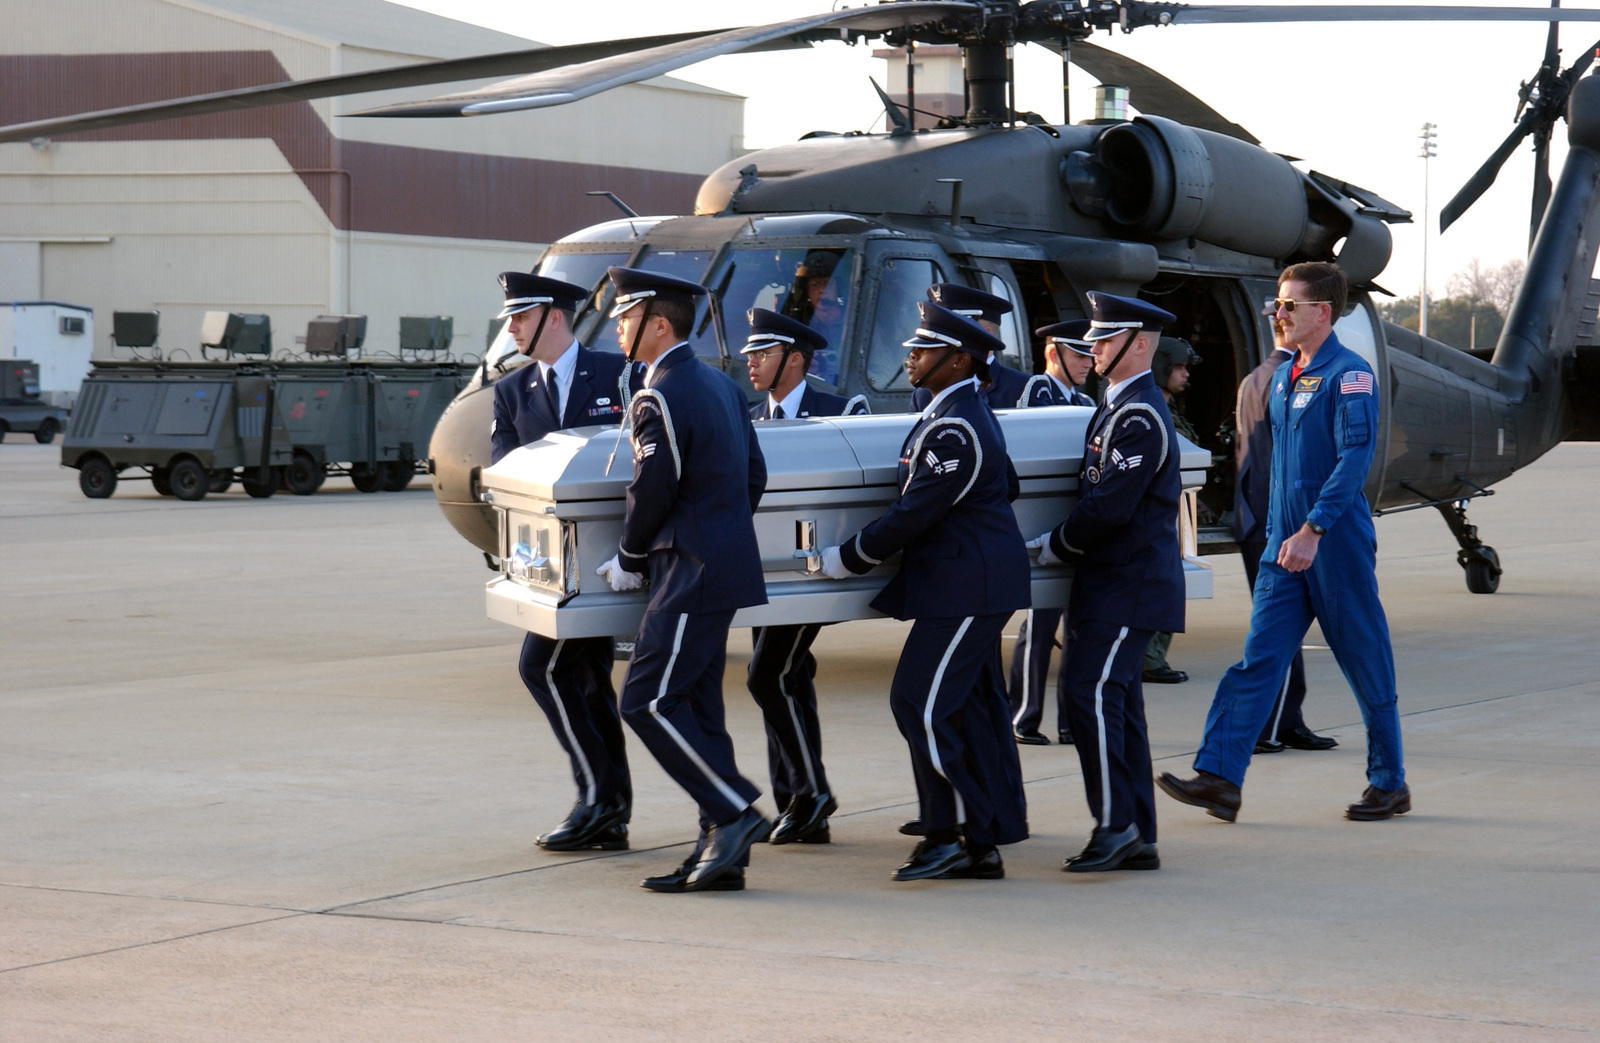 A US Air Force (USAF) Honor Guard transports a coffin carrying the remainsof a Space Shuttle Columbia crewmember, across the flight line at Barksdale Air Force Base, Louisiana (LA). Accompanying the Honor Guard is National Aeronautics Space Administration (NASA) Astronaut Jim Reilly. USAF HH-60 Black Hawk helicopter is parked in the background